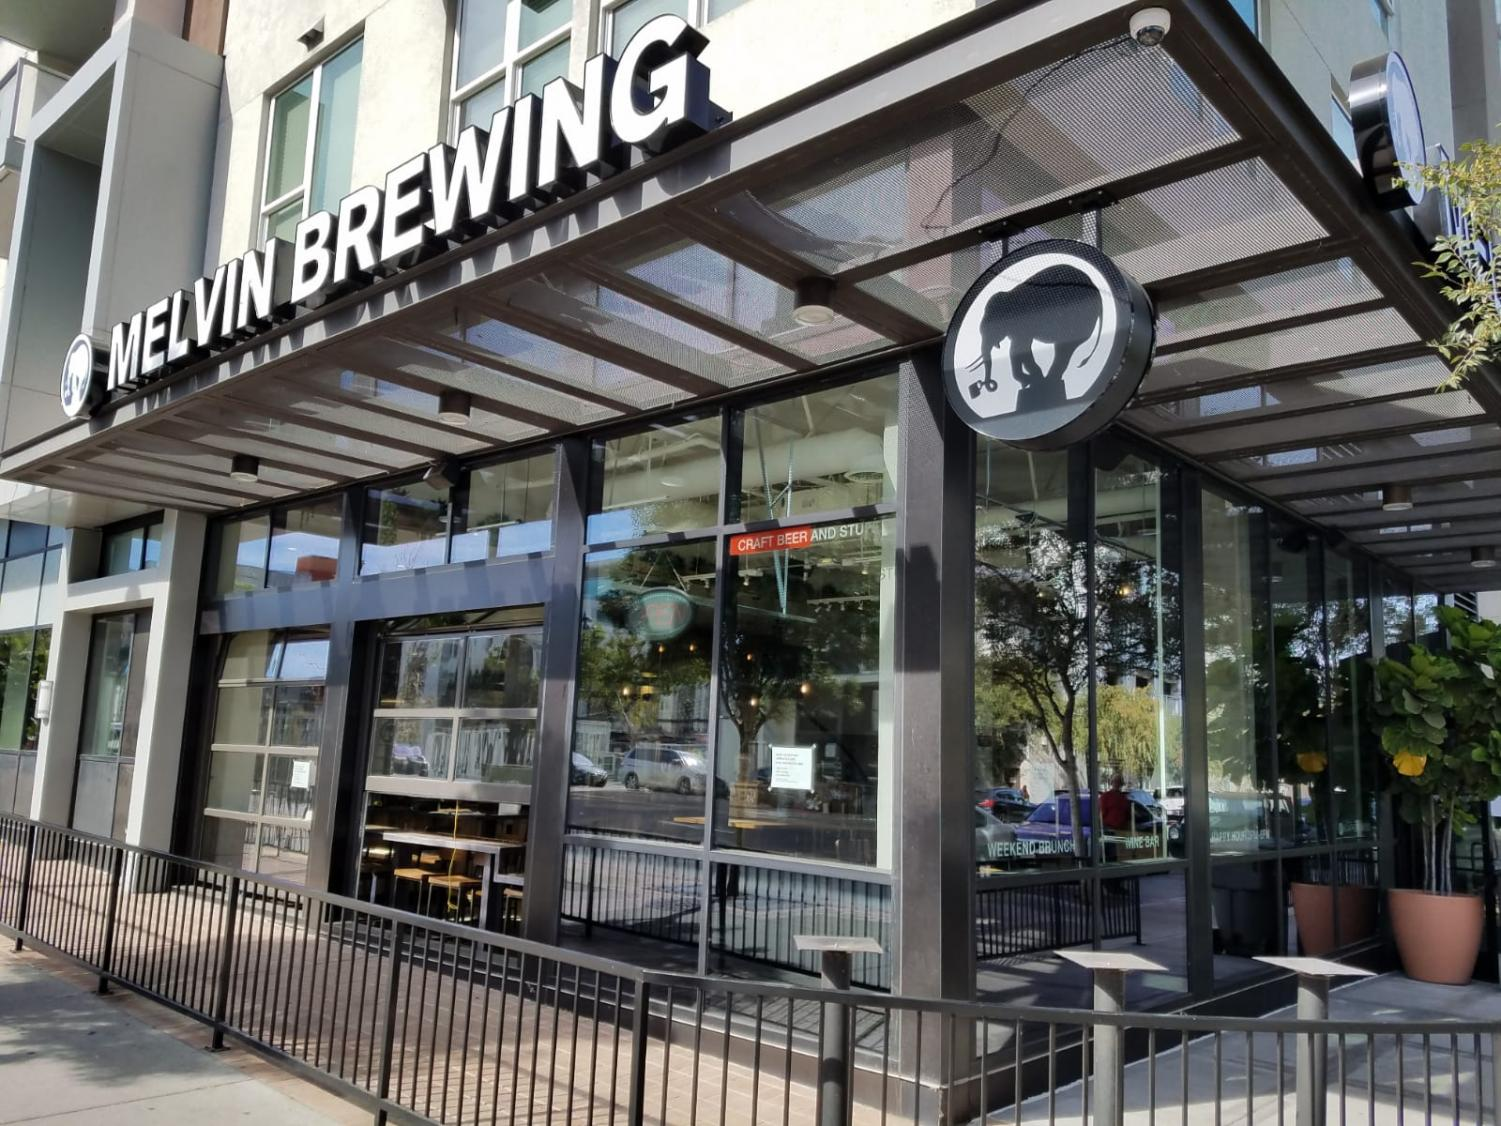 Melvin brewing is getting ready to open its stylish East Village location featuring a seven barrel brewhouse. By Brian Mohler.